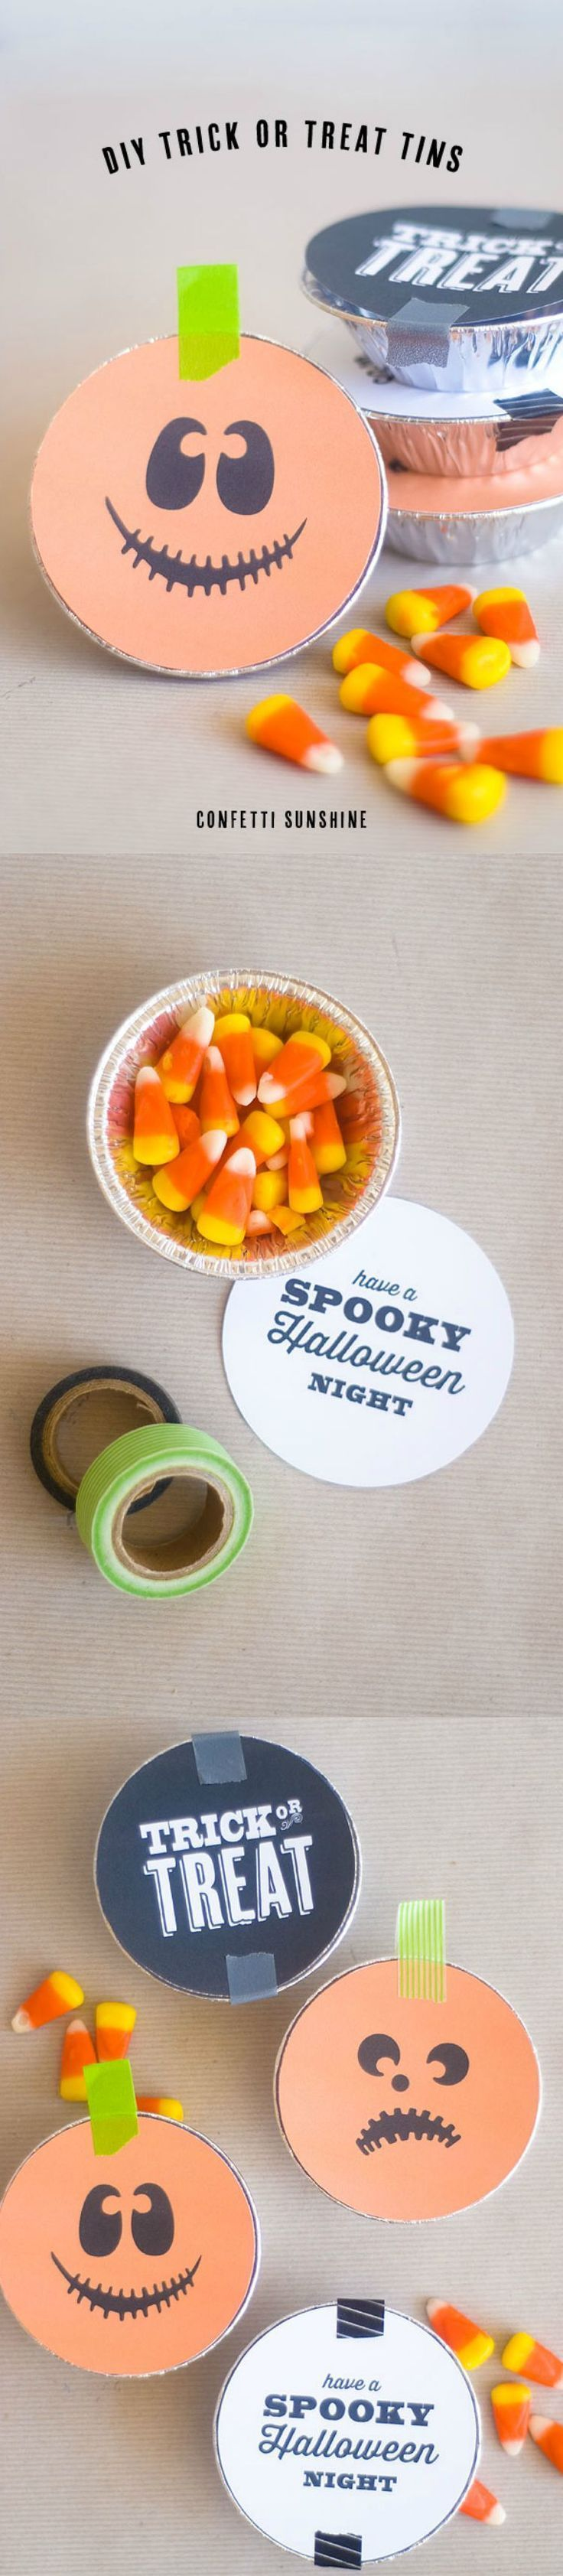 145 best images about Halloween on Pinterest   Halloween party ...